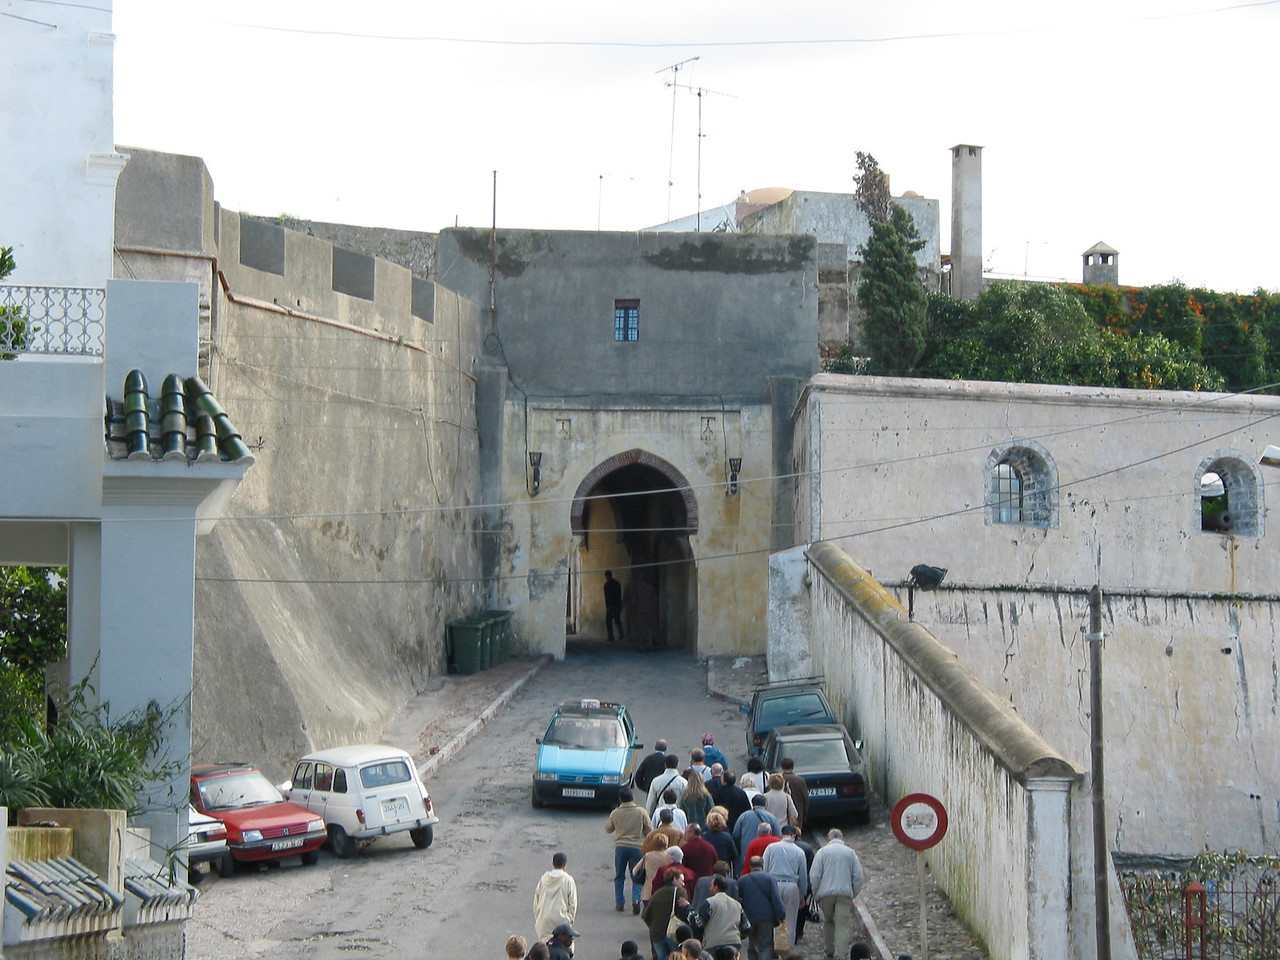 """Entrance to the """"old city"""" or medina of Tangier.  Seen here are the old city walls and one of the city gates."""